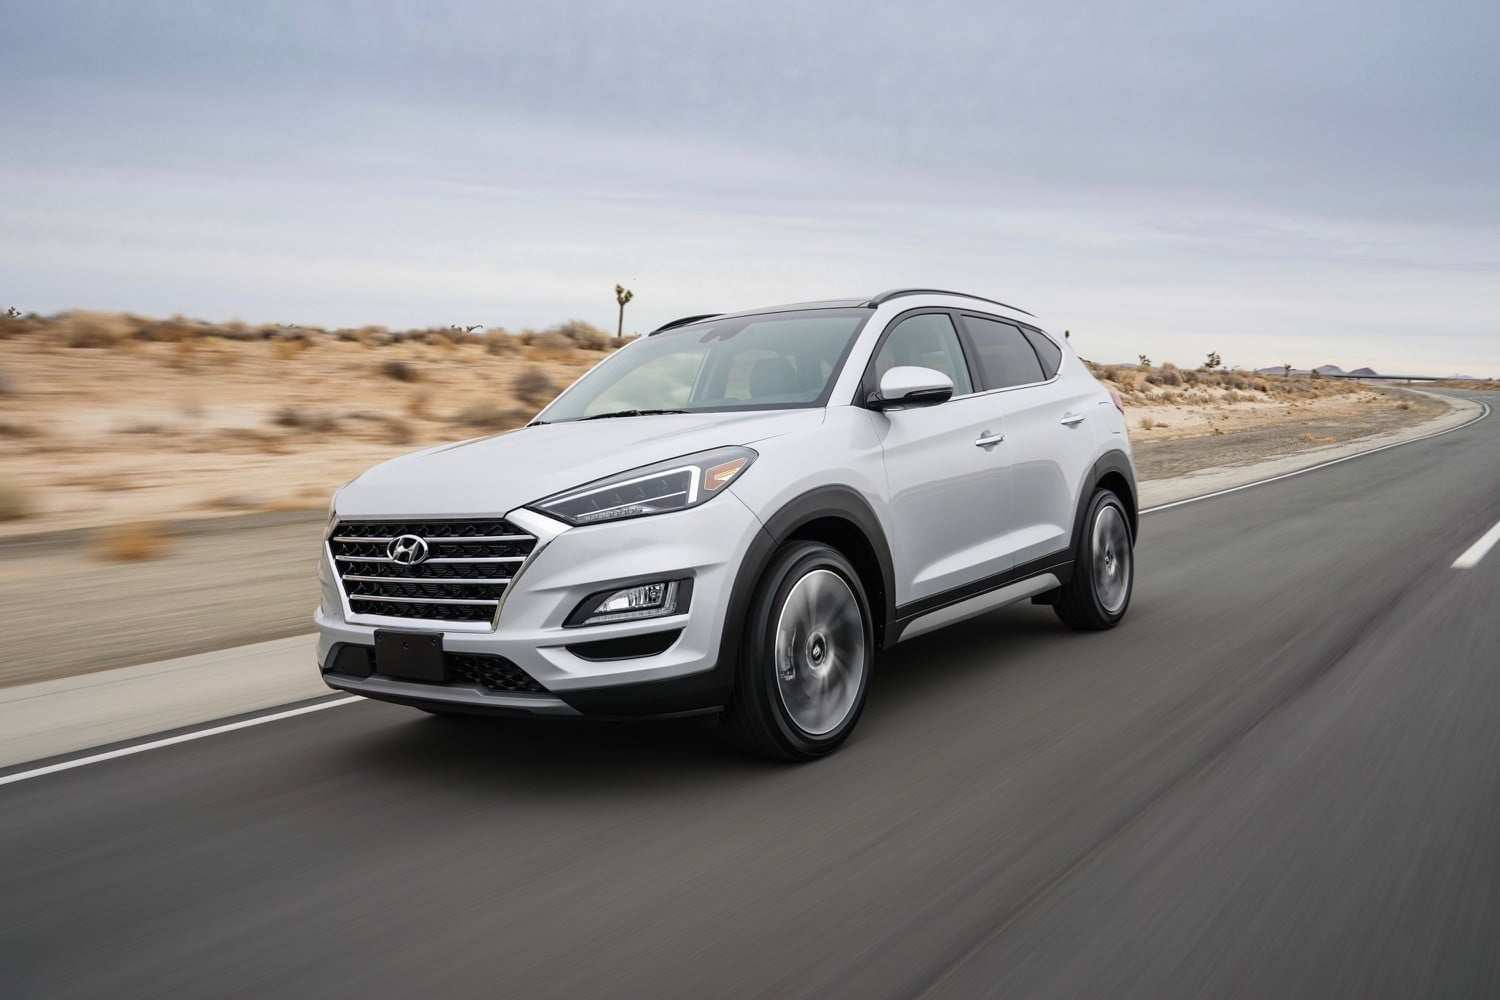 48 New When Does The 2020 Hyundai Tucson Come Out Price and Review with When Does The 2020 Hyundai Tucson Come Out